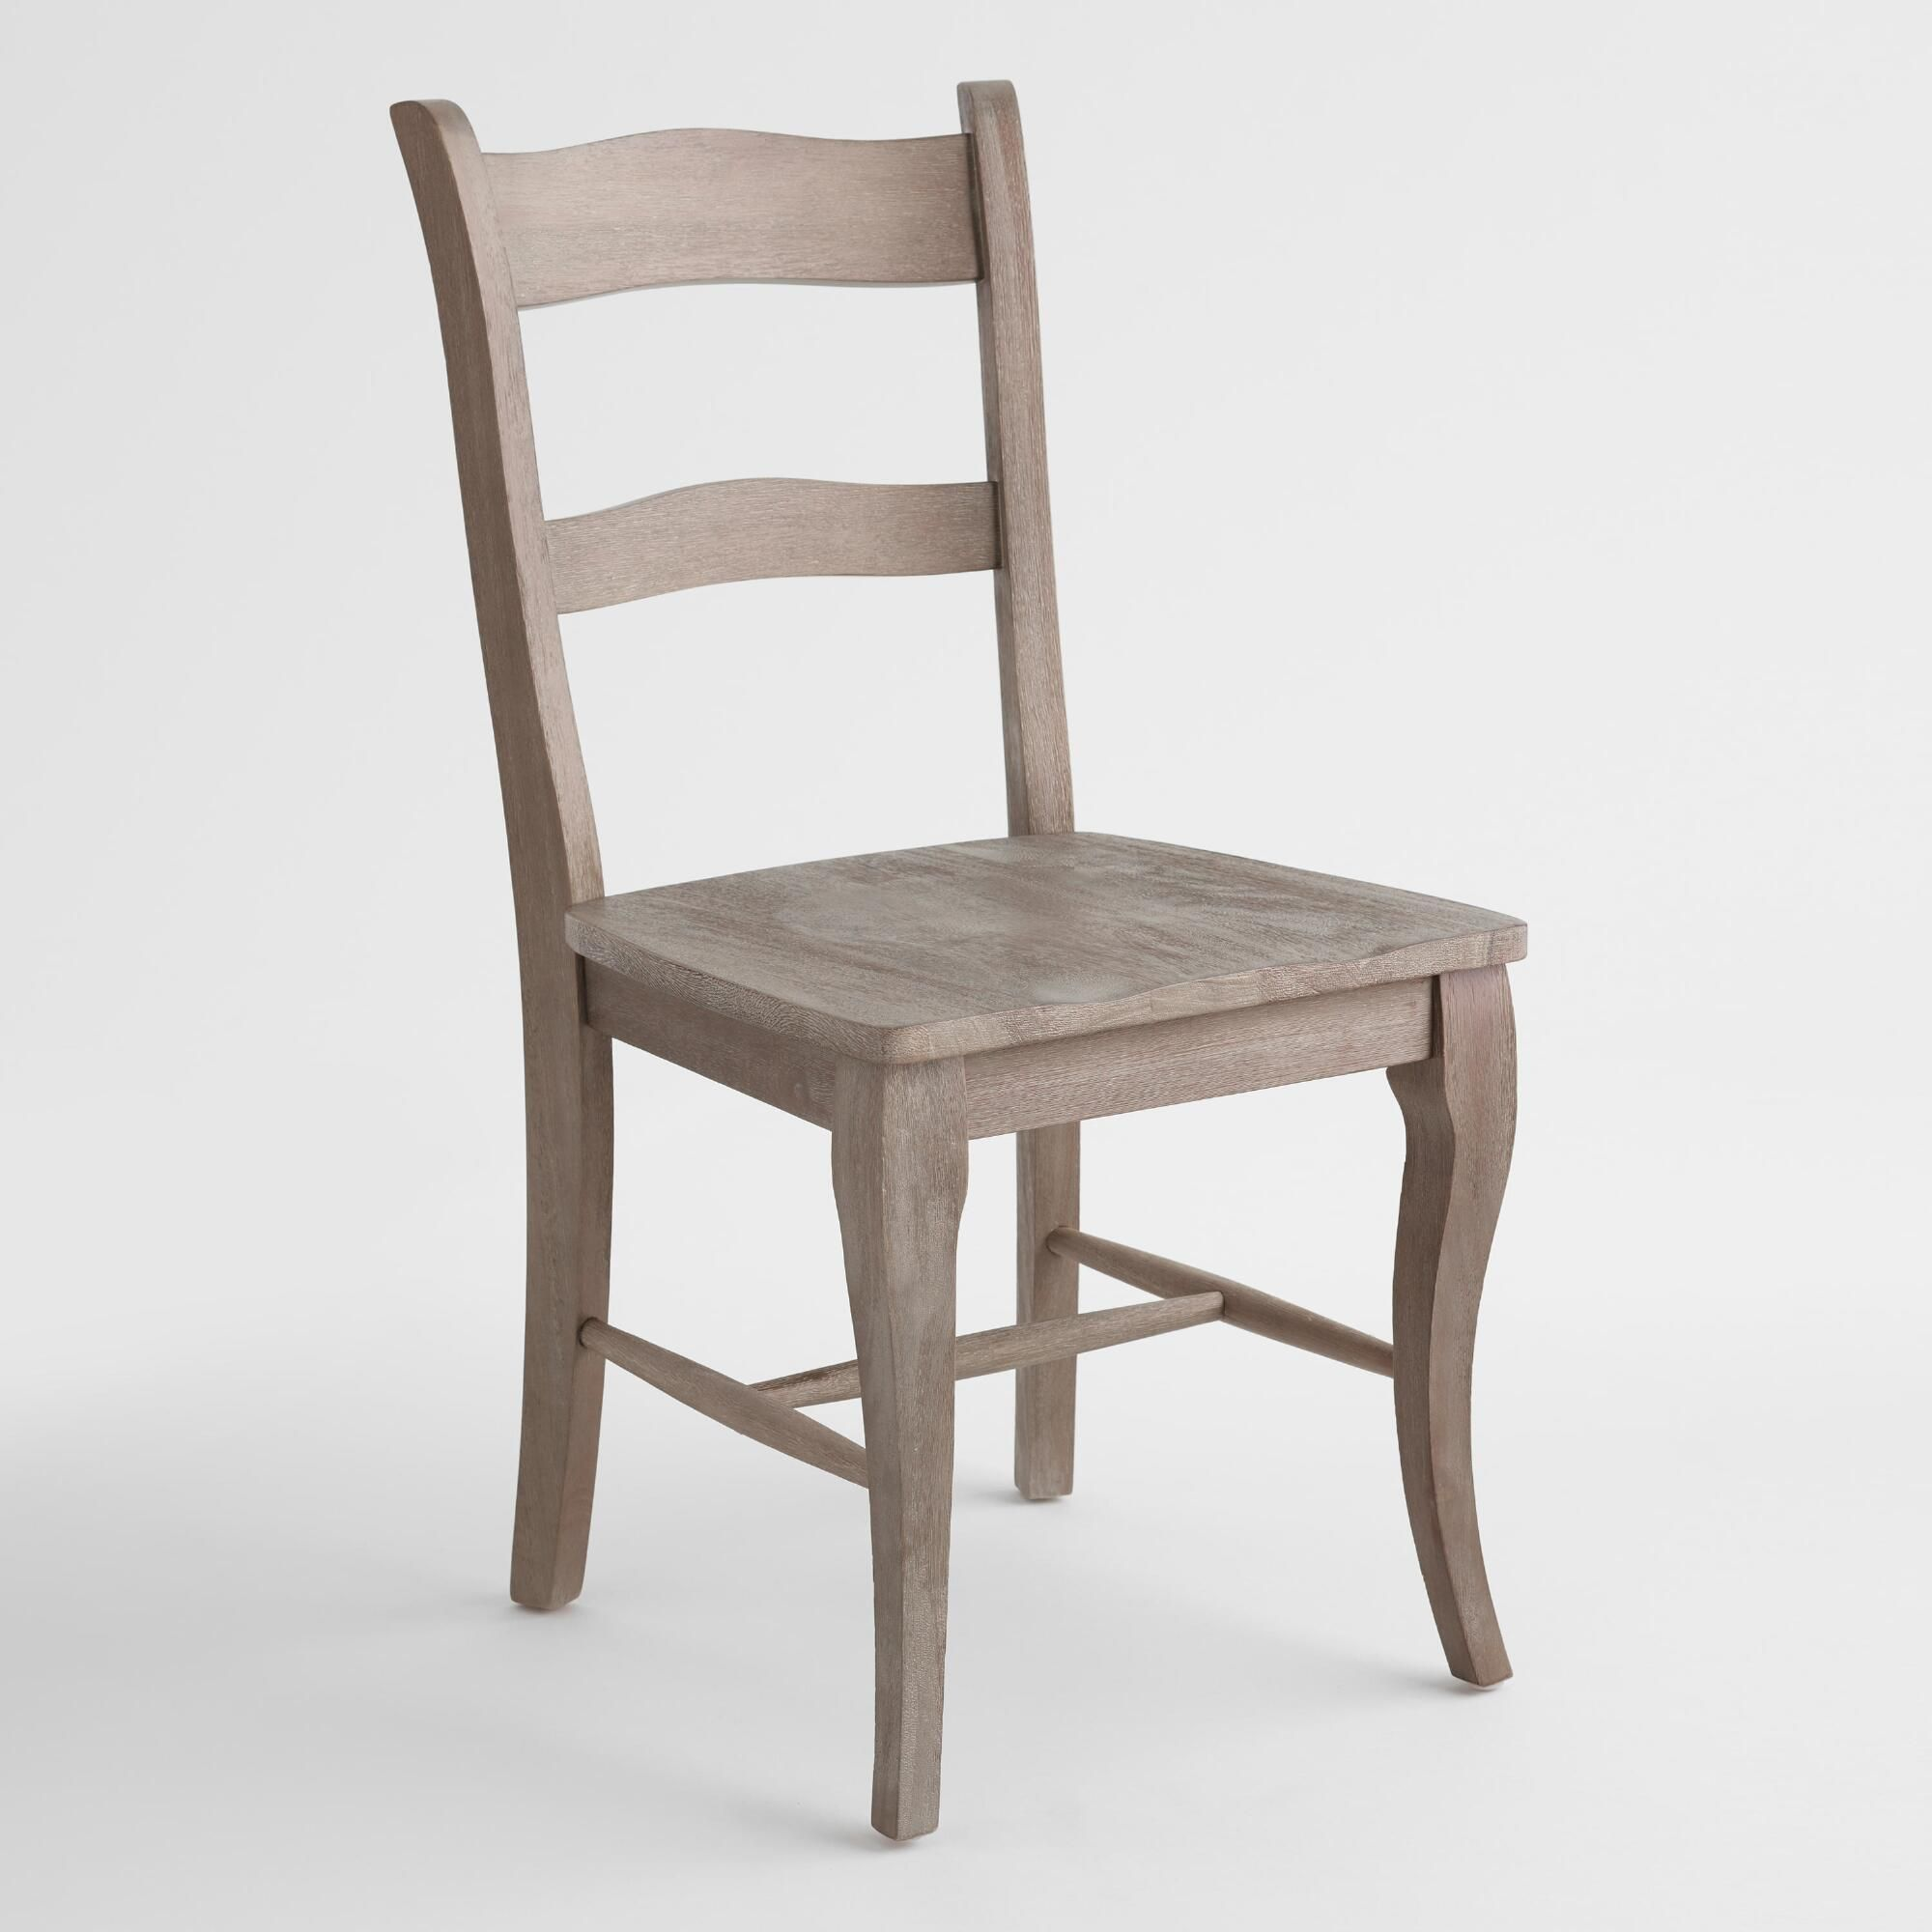 Crafted of solid rubberwood and acacia wood our petite chairs